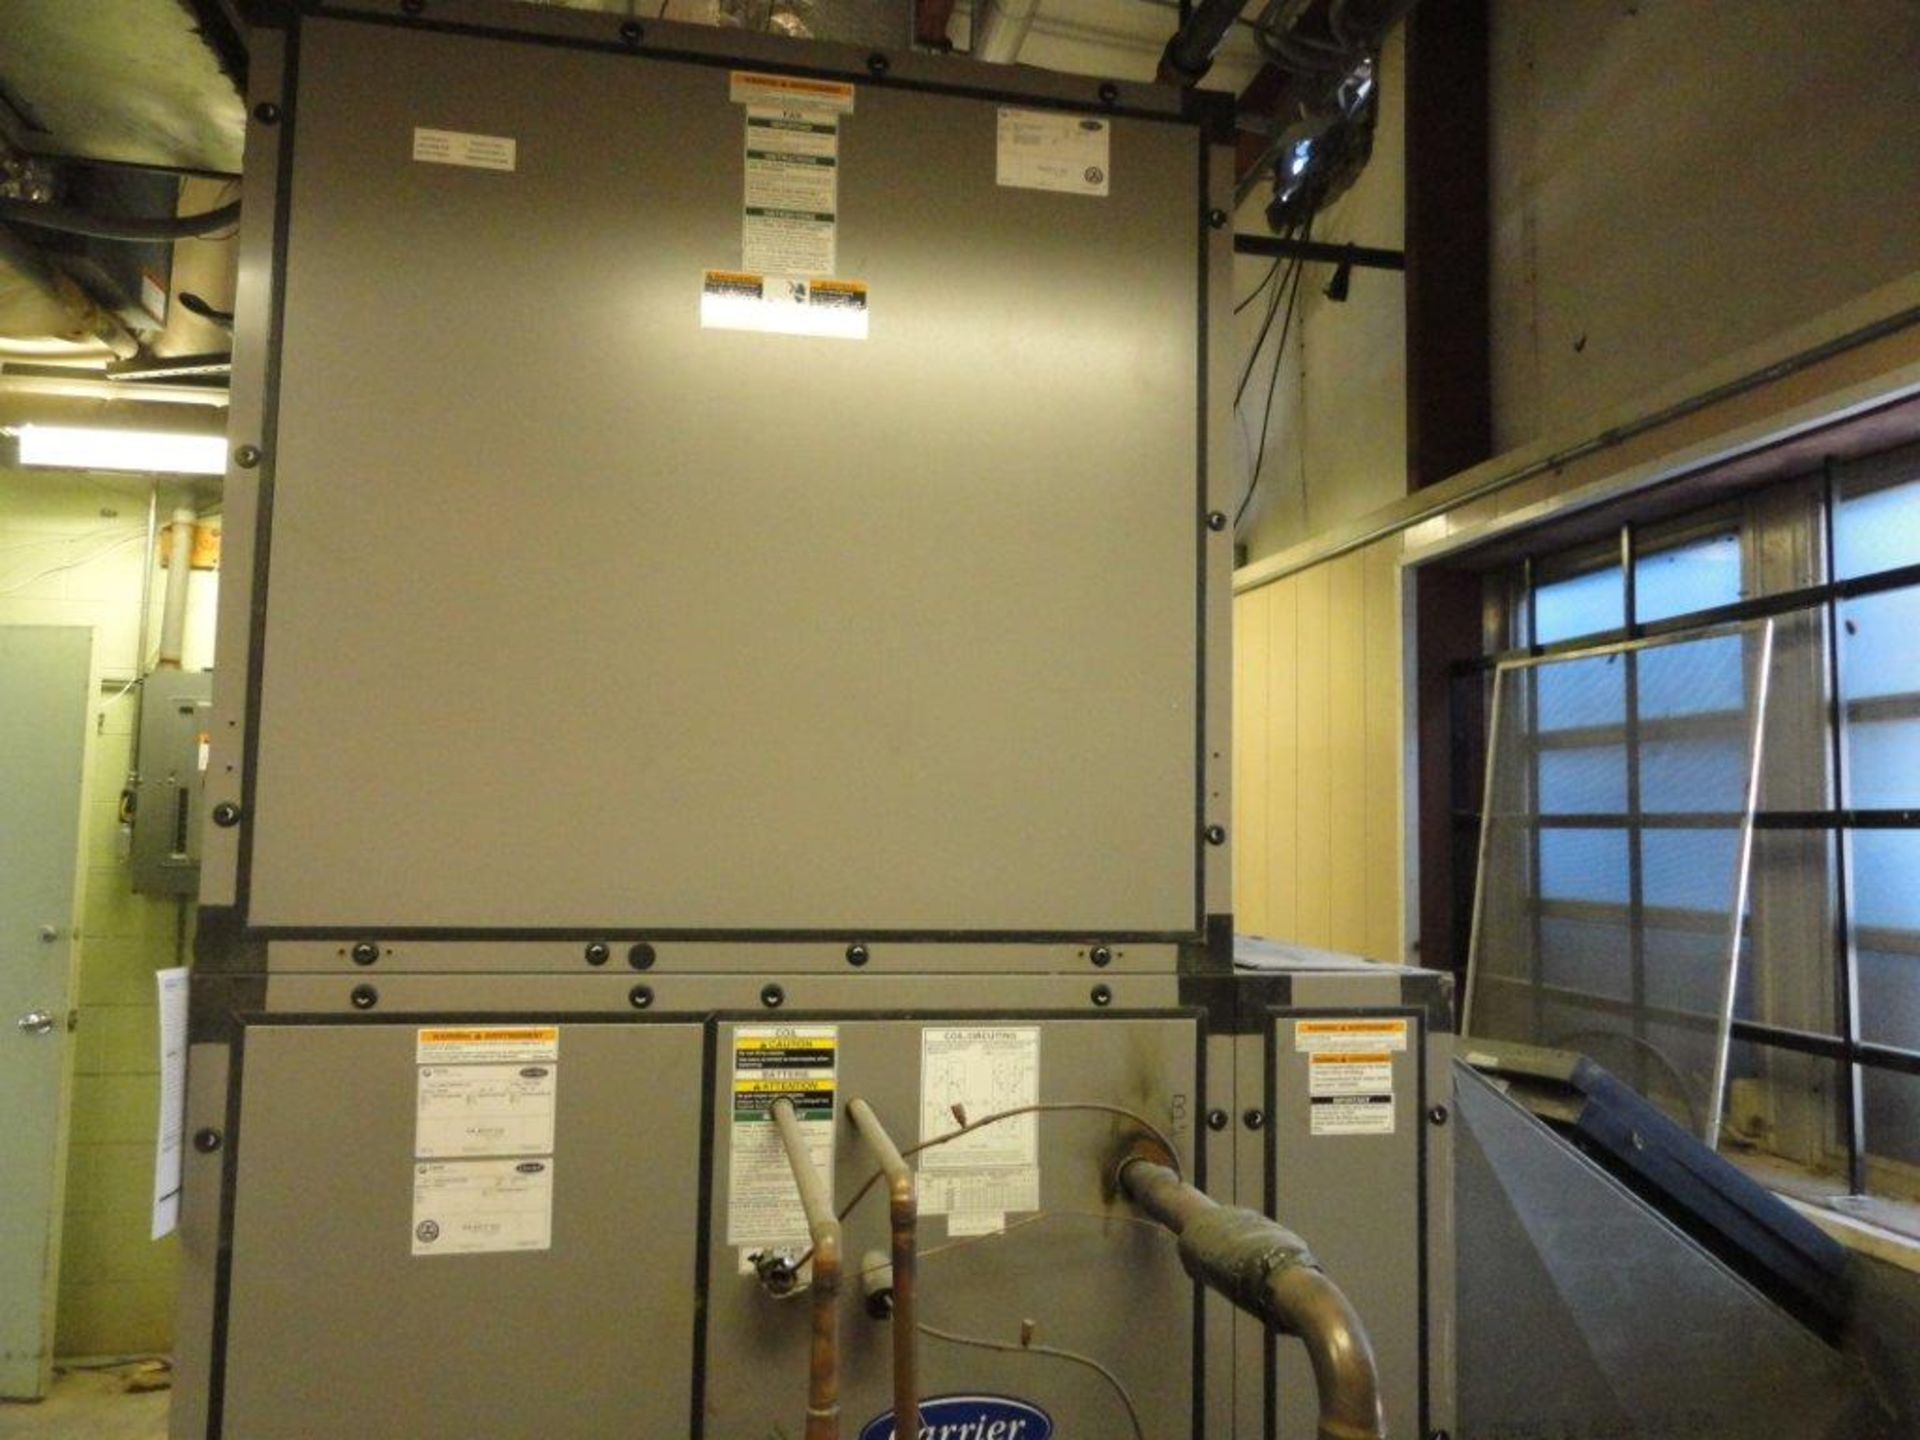 Lot 24 - Carrier Aero Indoor Air Handler 39MN17B0054VR11SXS